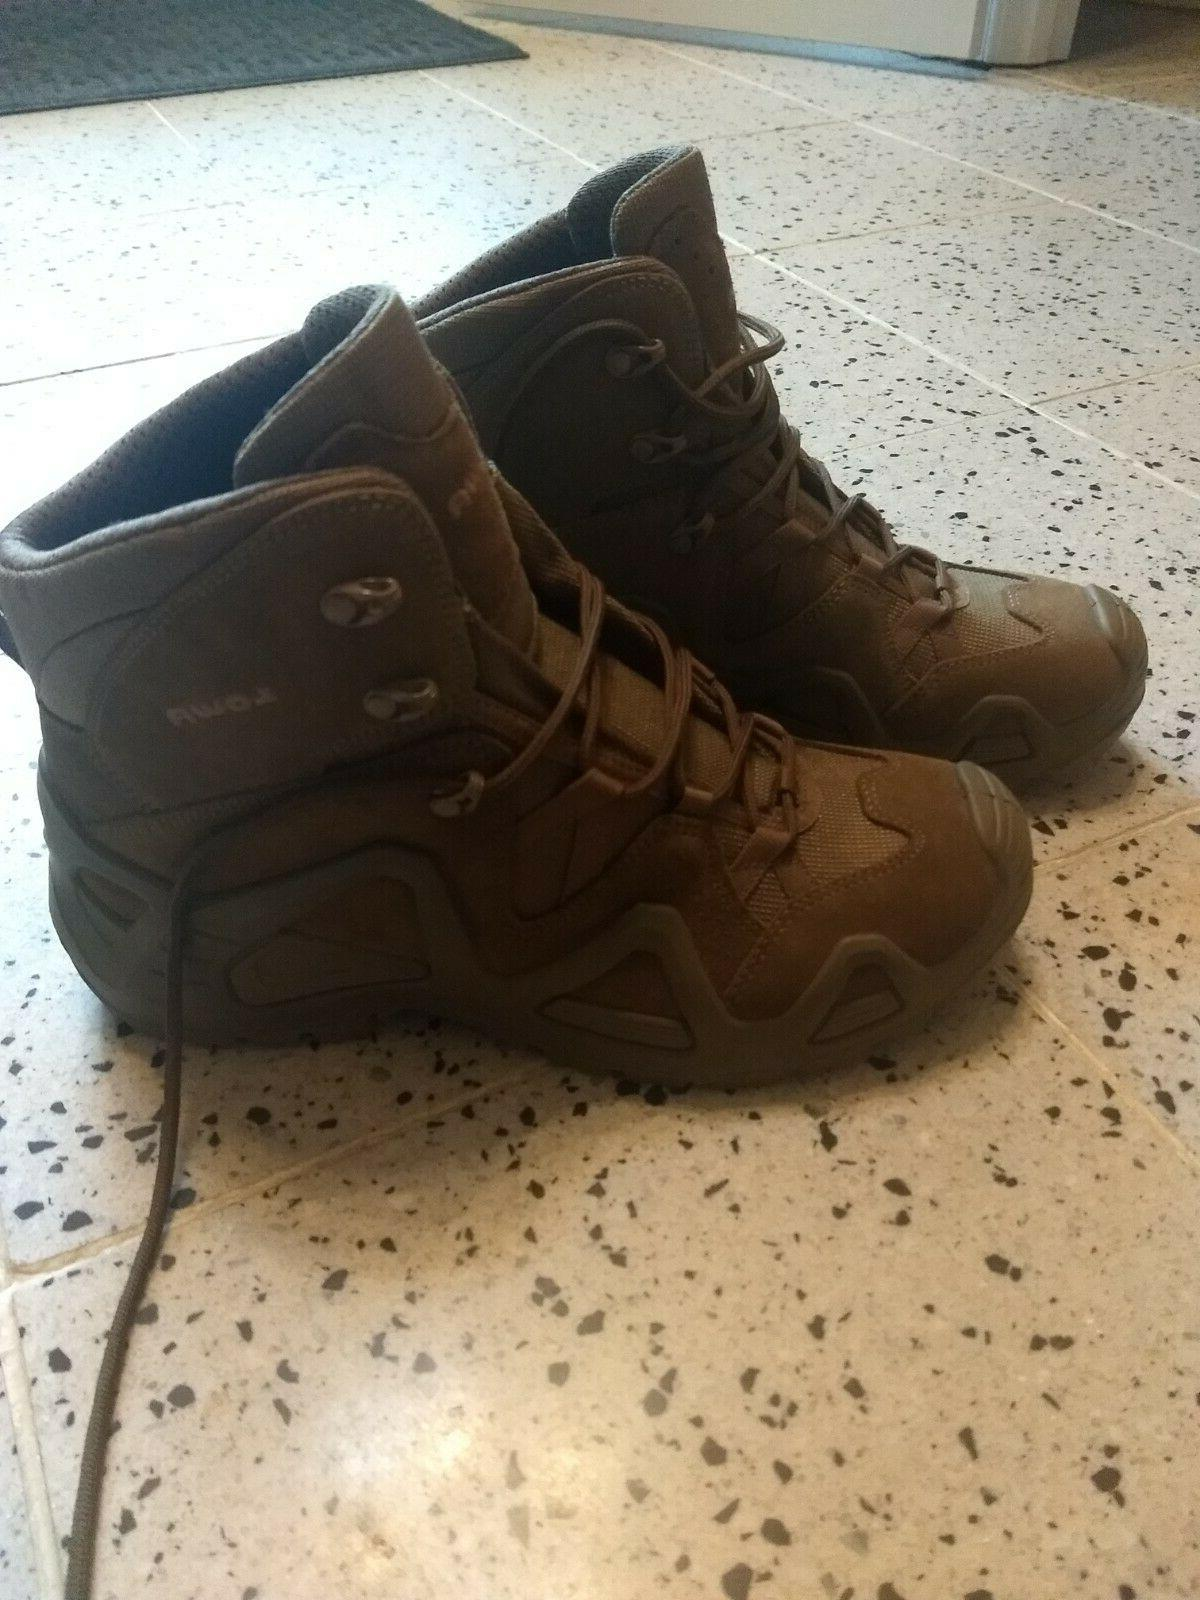 Men's Zephyr TF Hiking Shoes. Size 11. Coyote